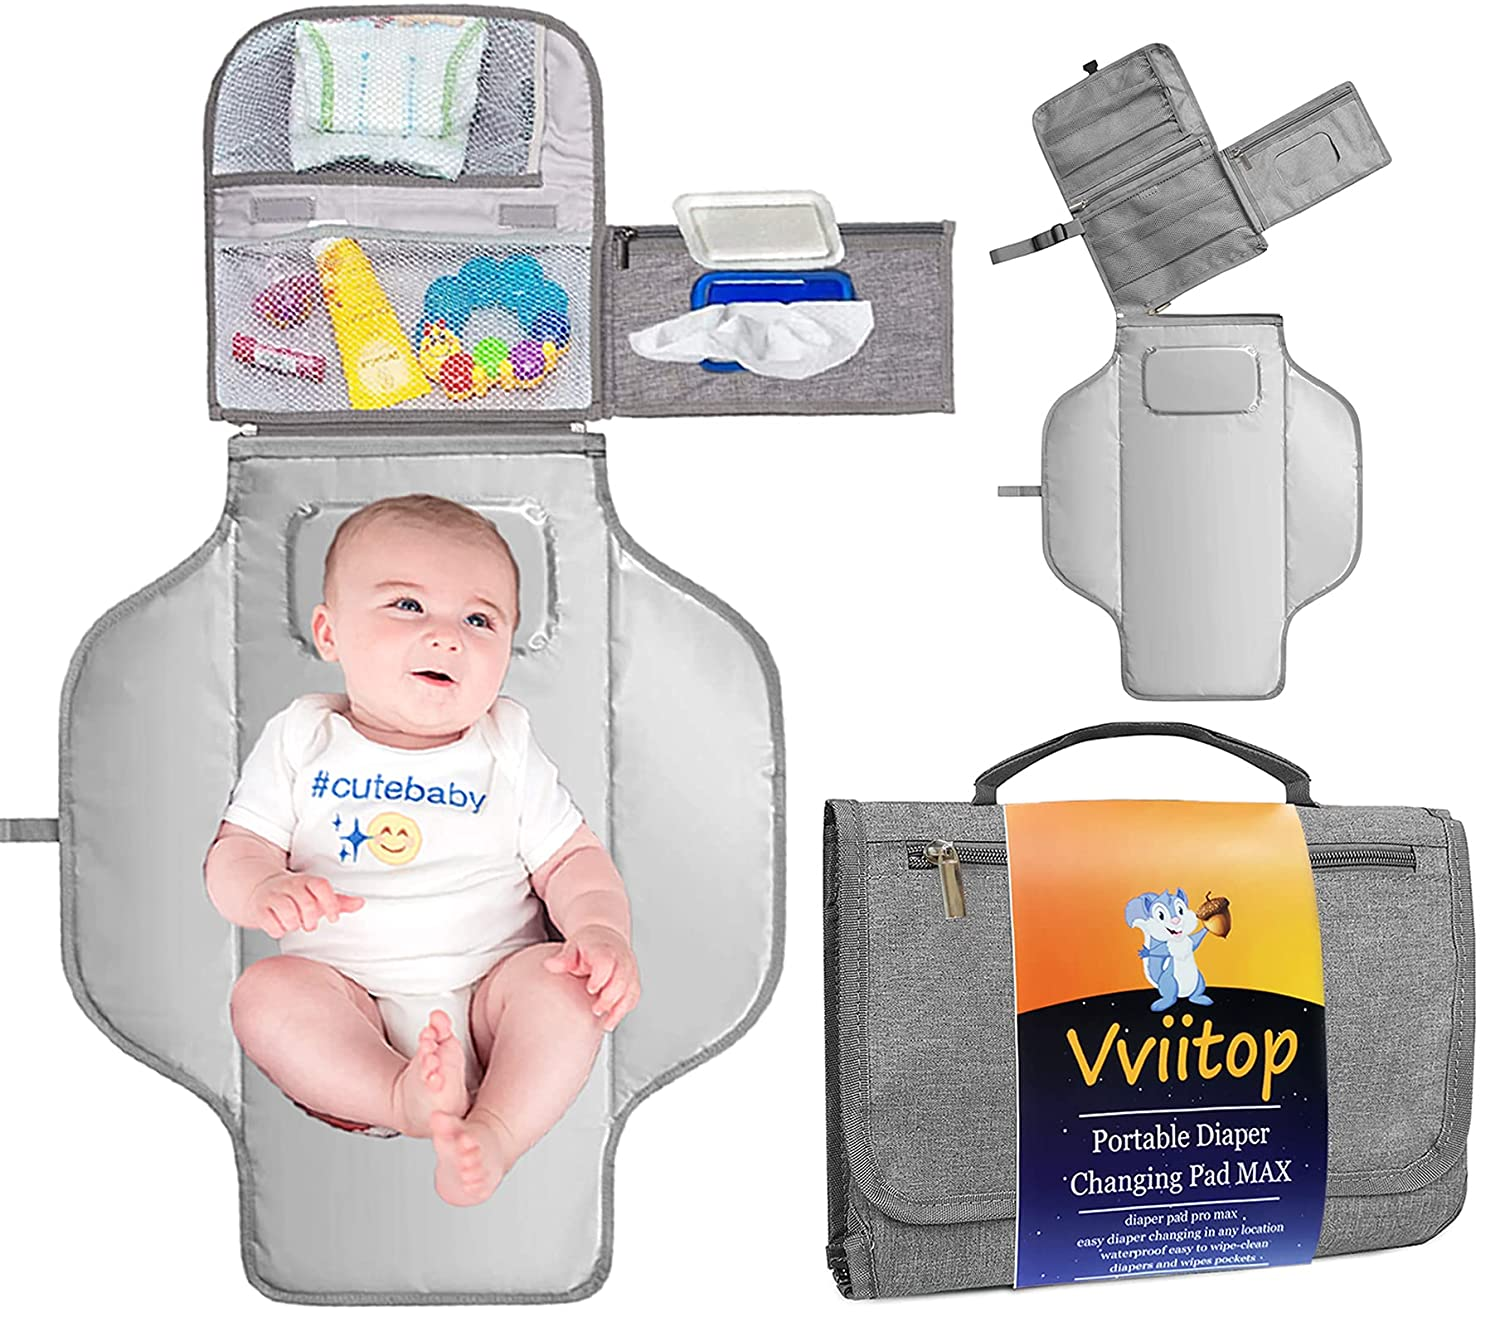 Portable Diaper Changing Pad MAX, Detachable Travel Changing Pad for Baby with Wipes Pocket, Diaper Pad Changing Mat Clutch Bag for Newborn Boys & Girls